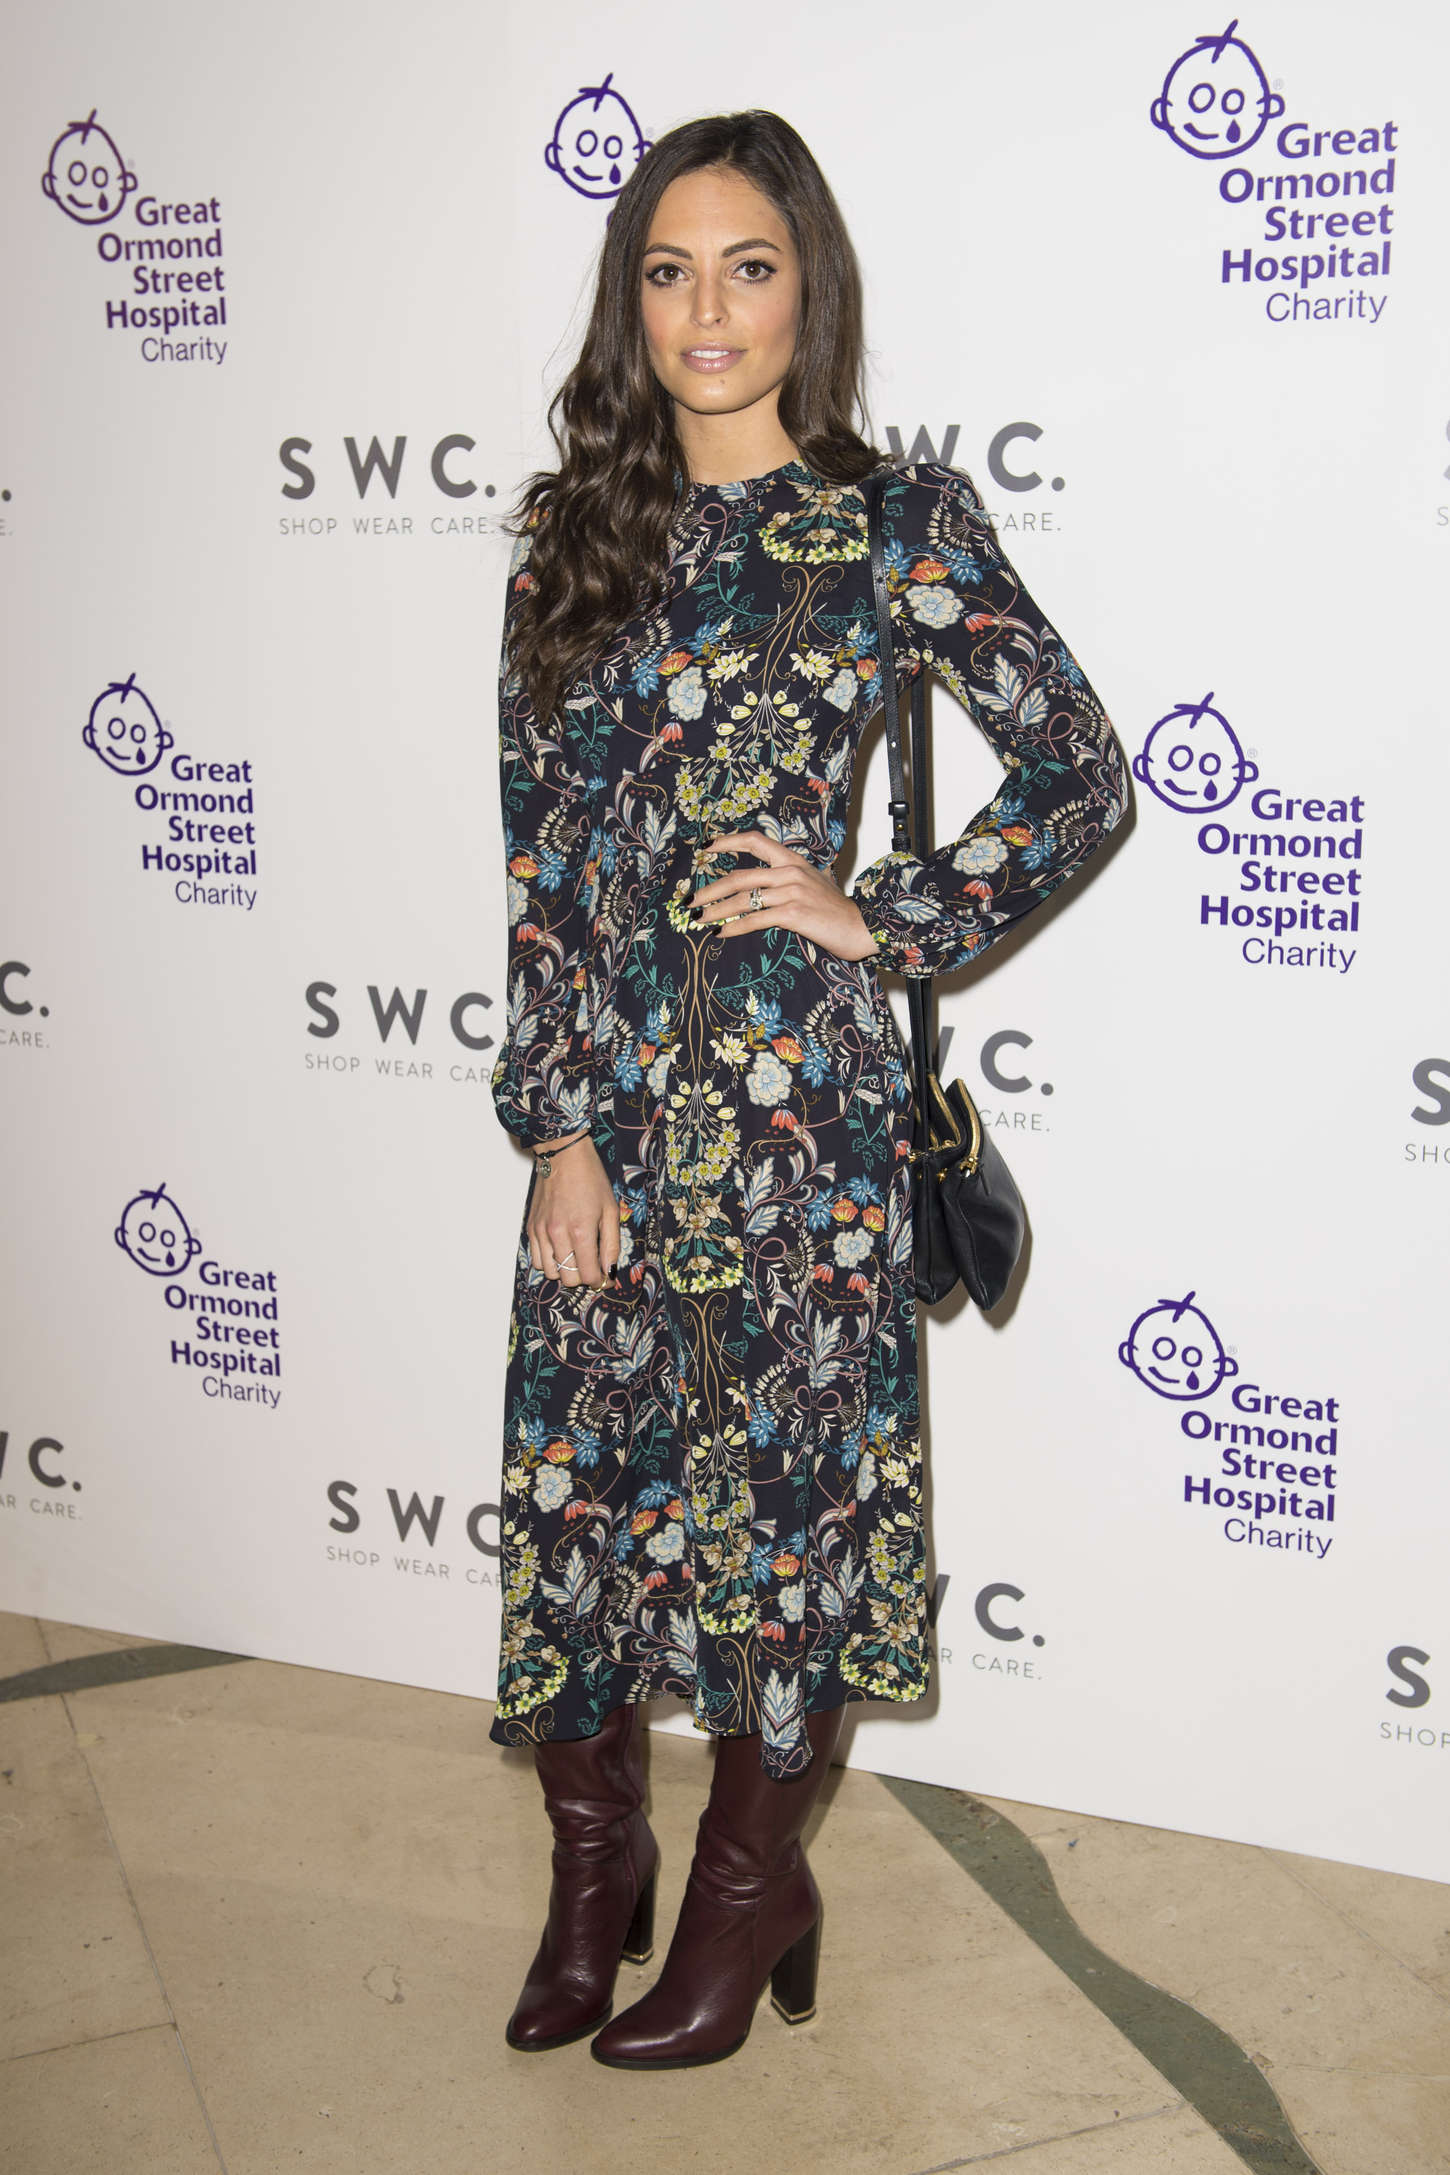 Olivia Wayne Shop Wear Care In Aid Of Great Ormond Street Hospital Childrens Charity in London